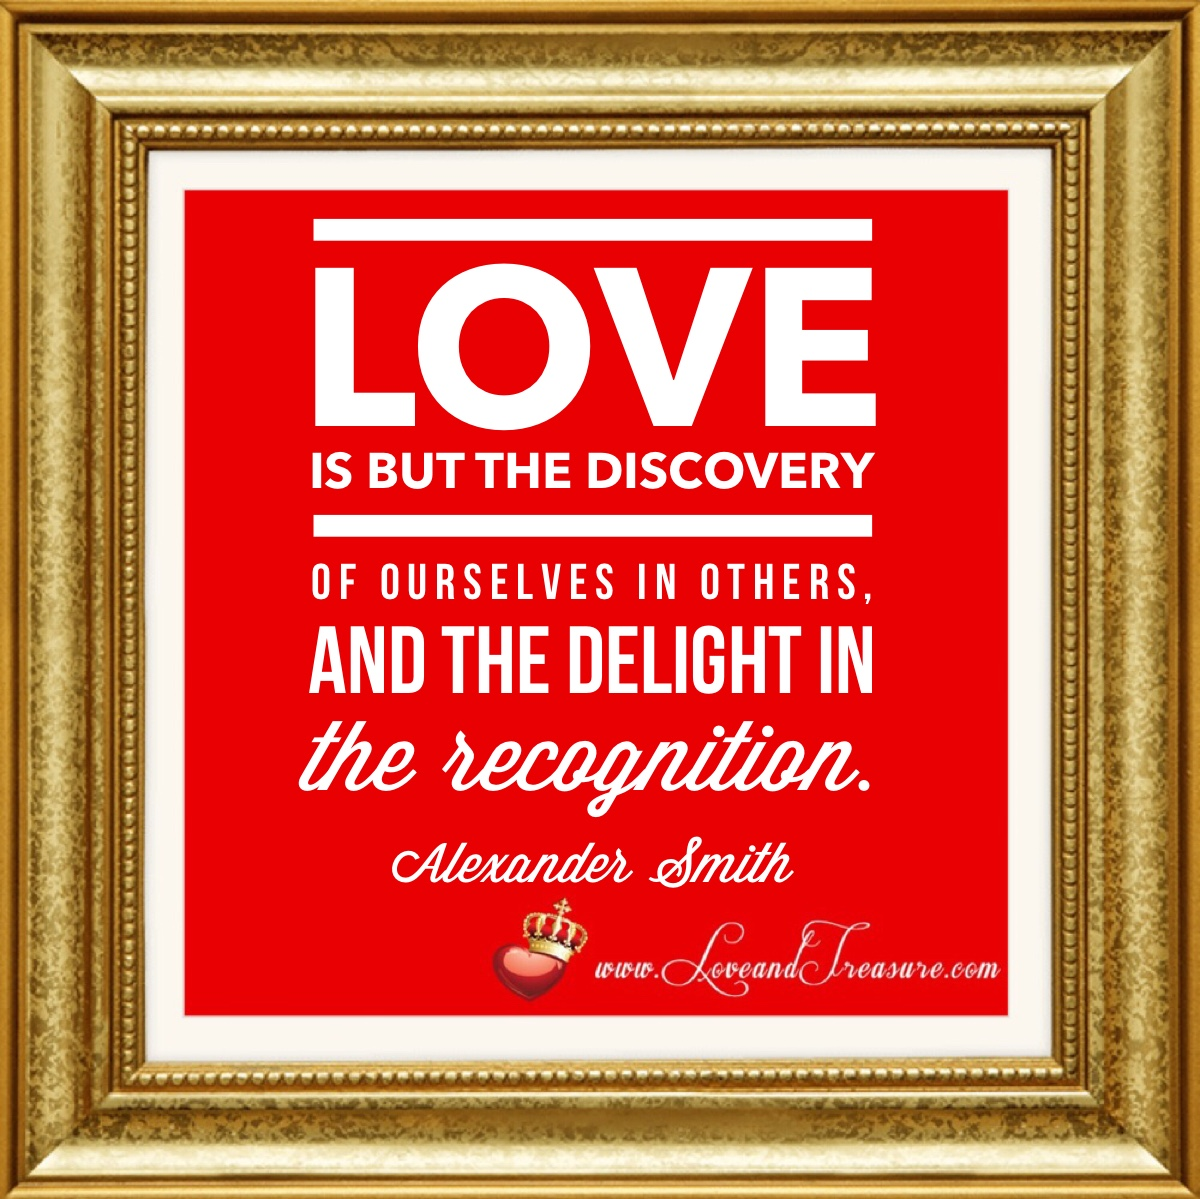 Love is but the discovery of ourselves in others, and the delight in the recognition. -Alexander Smith, www.loveandtreasure.com, love and treasure, what is love, love, #love